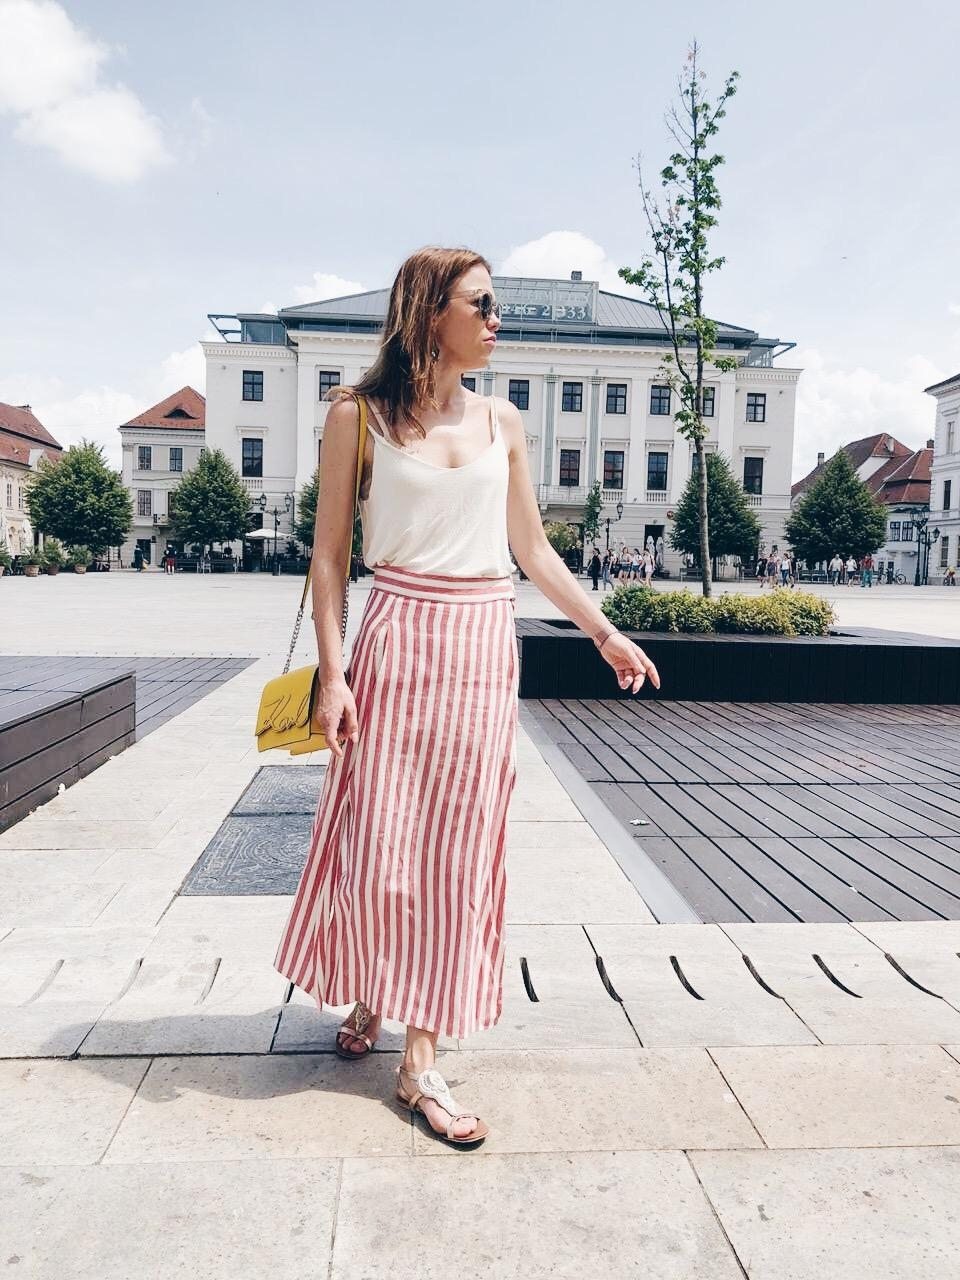 Citytrip #sommerlook #summervibes #skirt #streetstyle #ootd #fashionlook #citygirl #travel